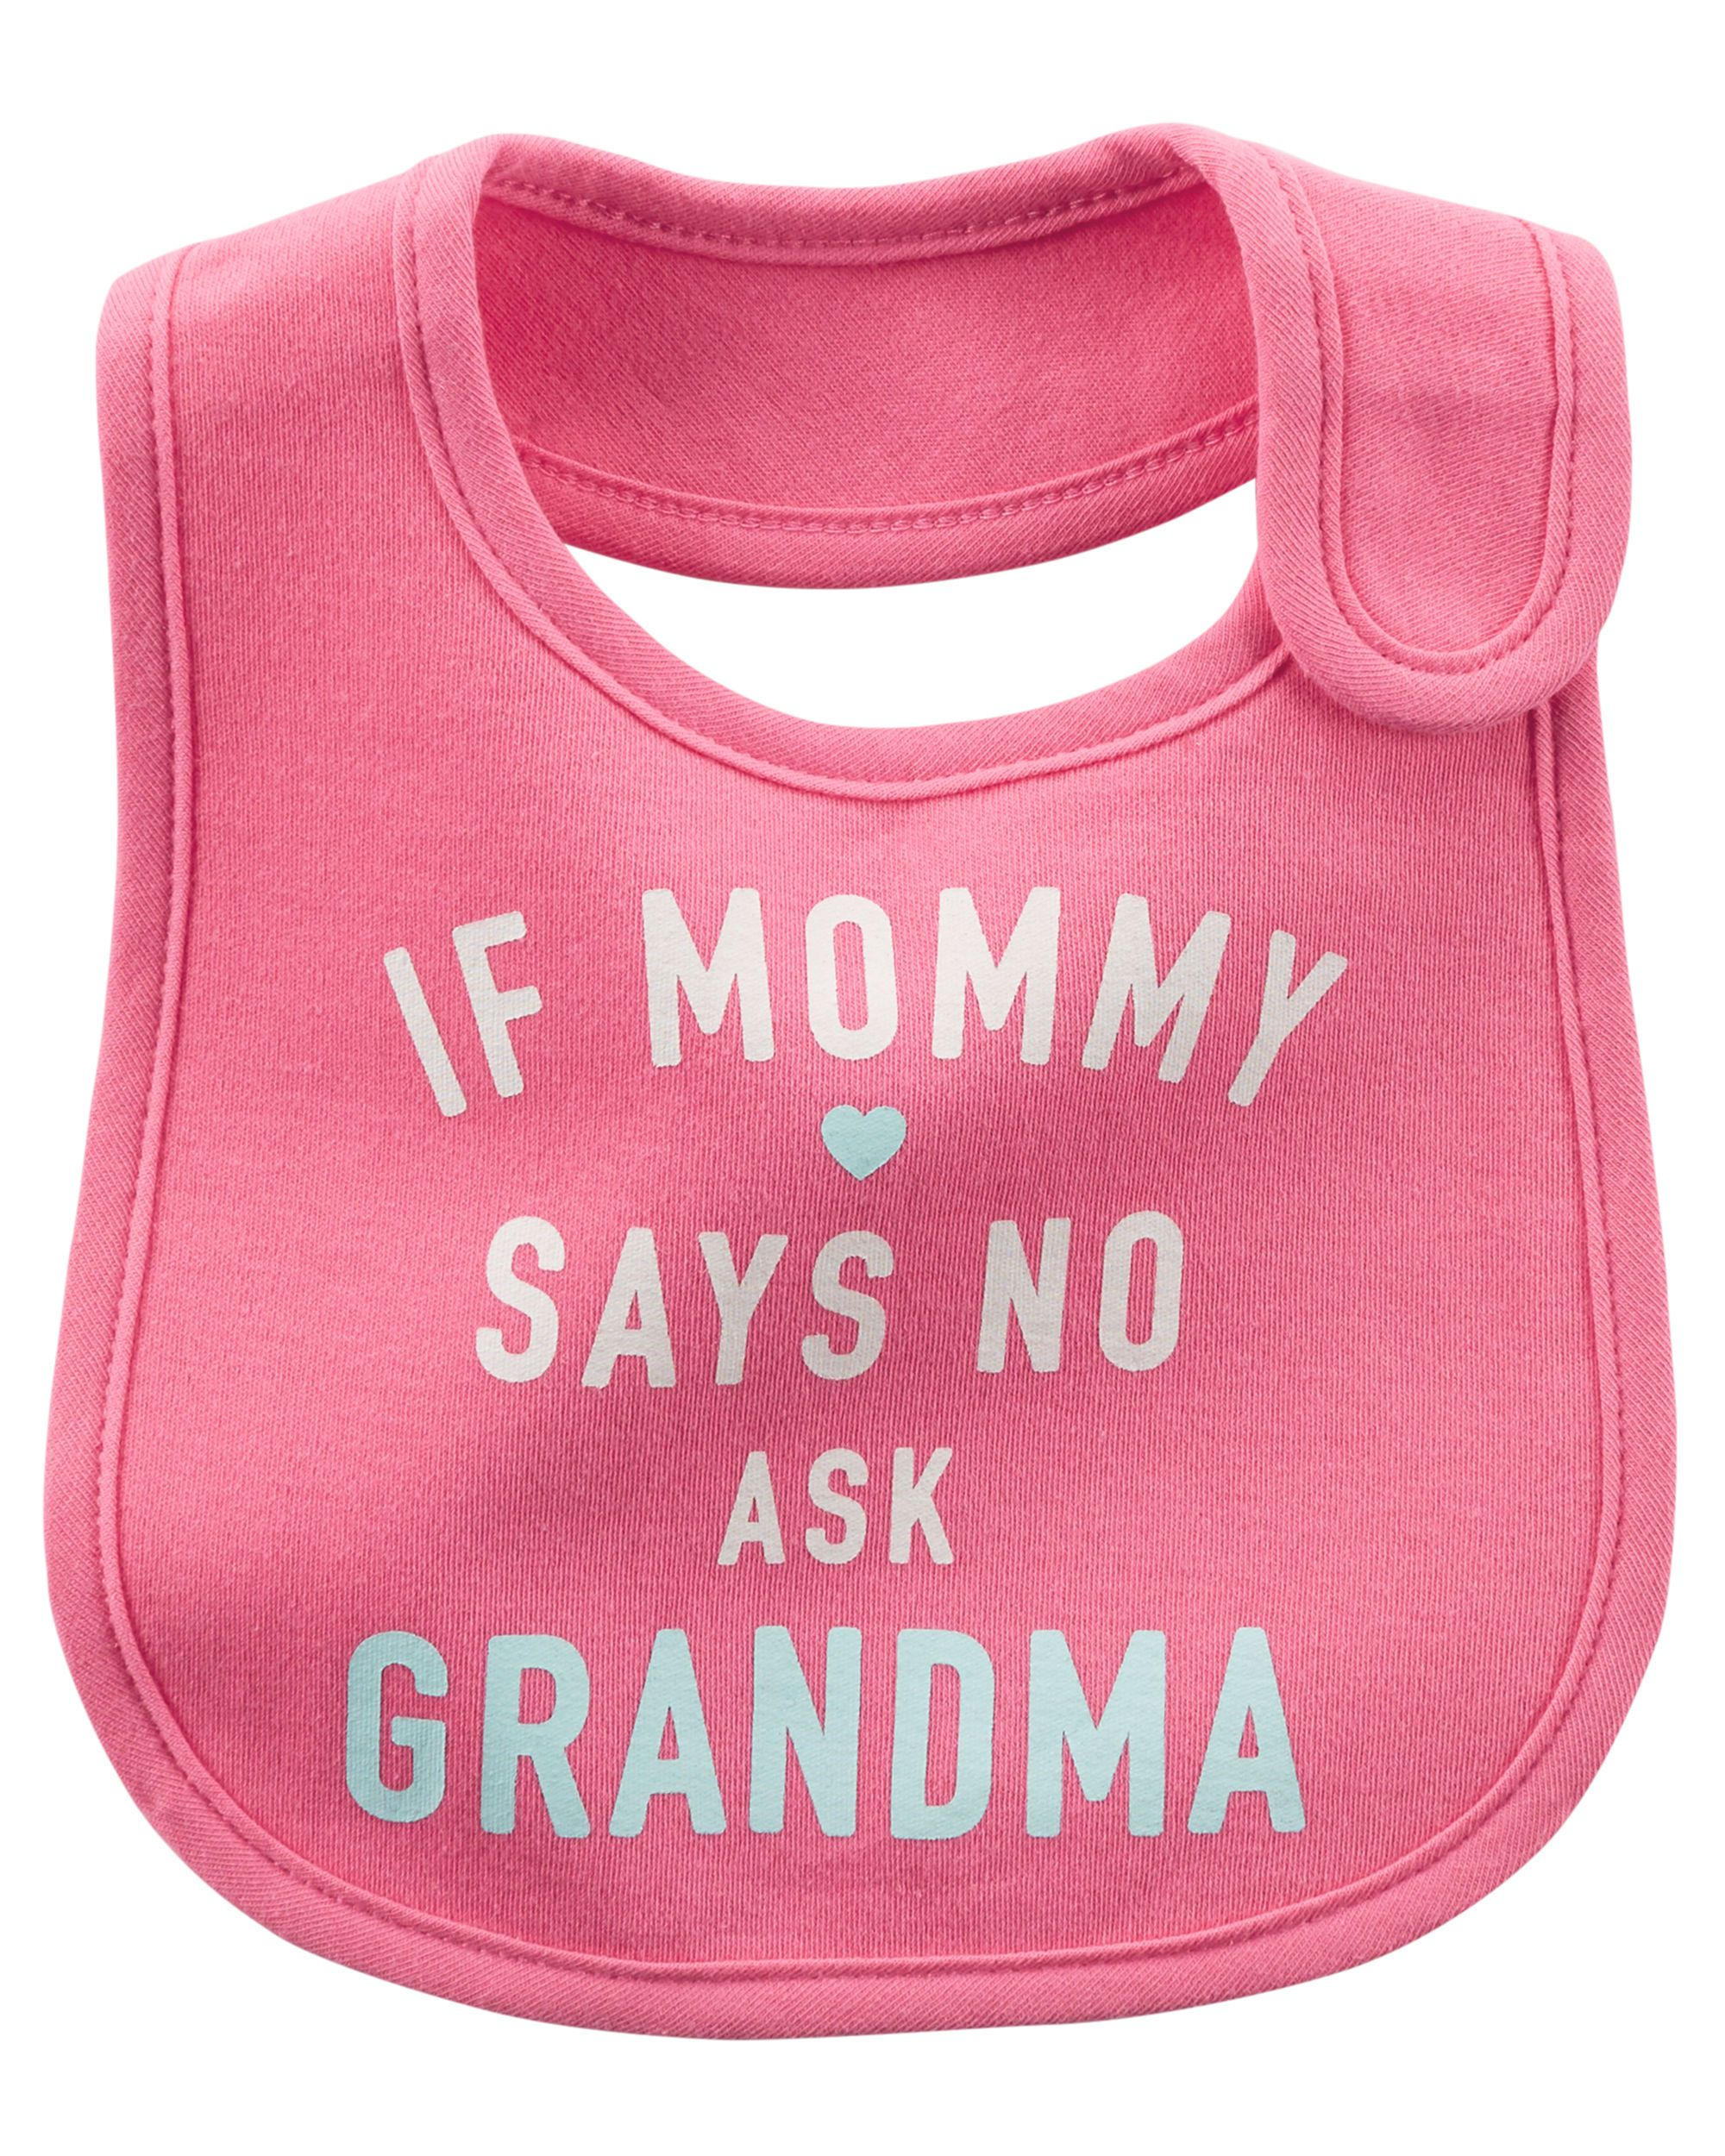 Ask Grandma Teething Bib